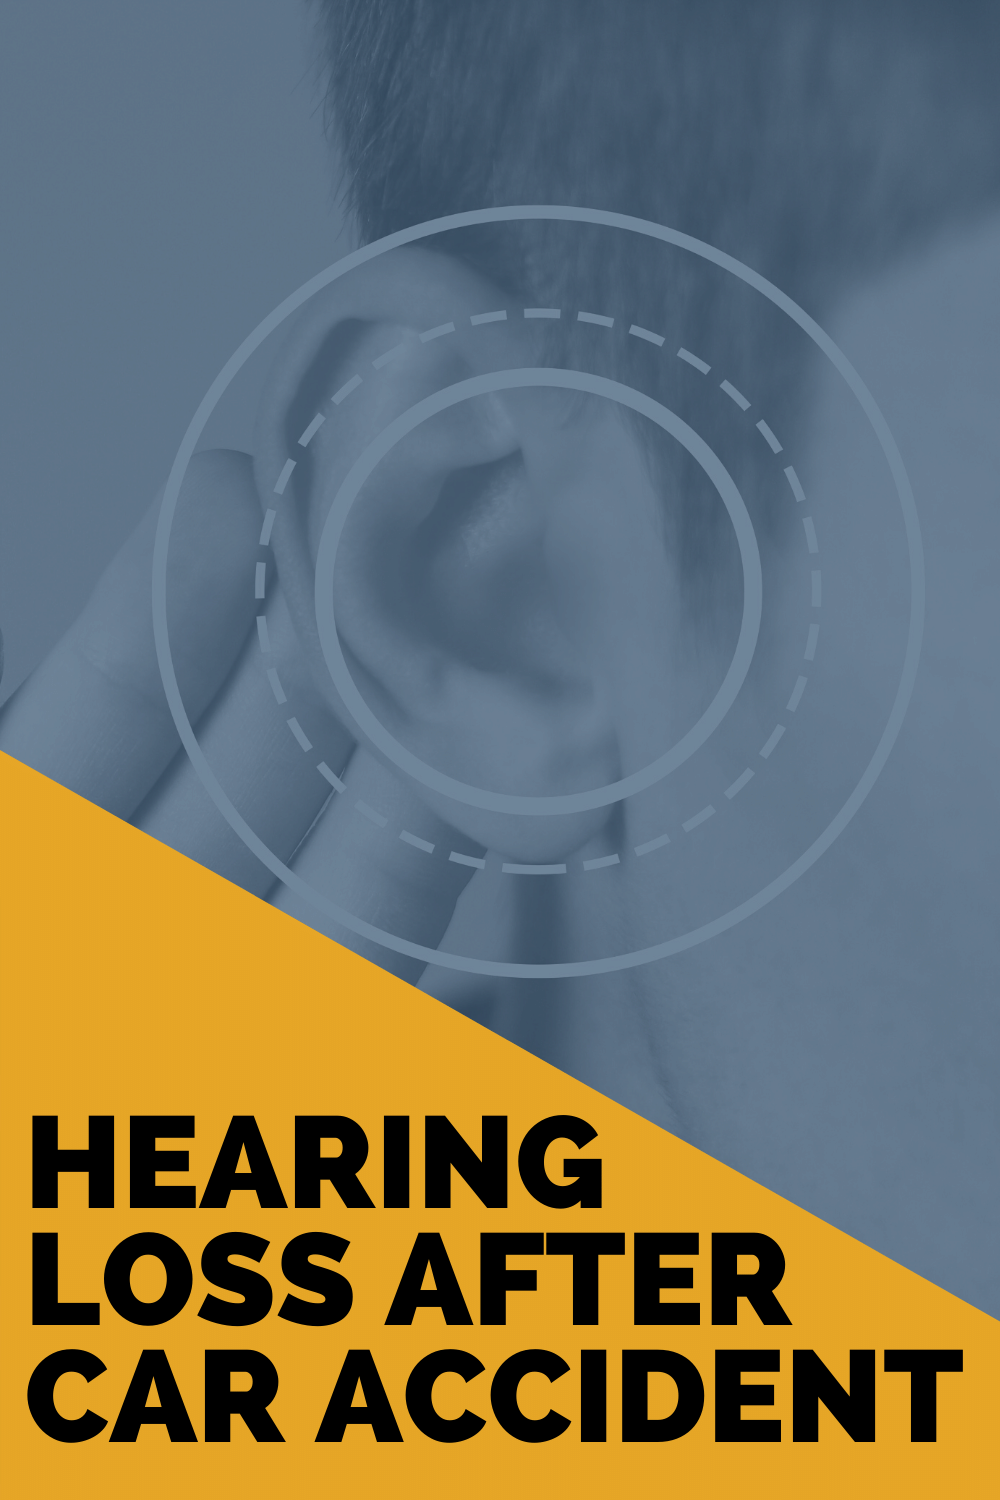 Hearing Loss After Car Accident: What You Need To Know